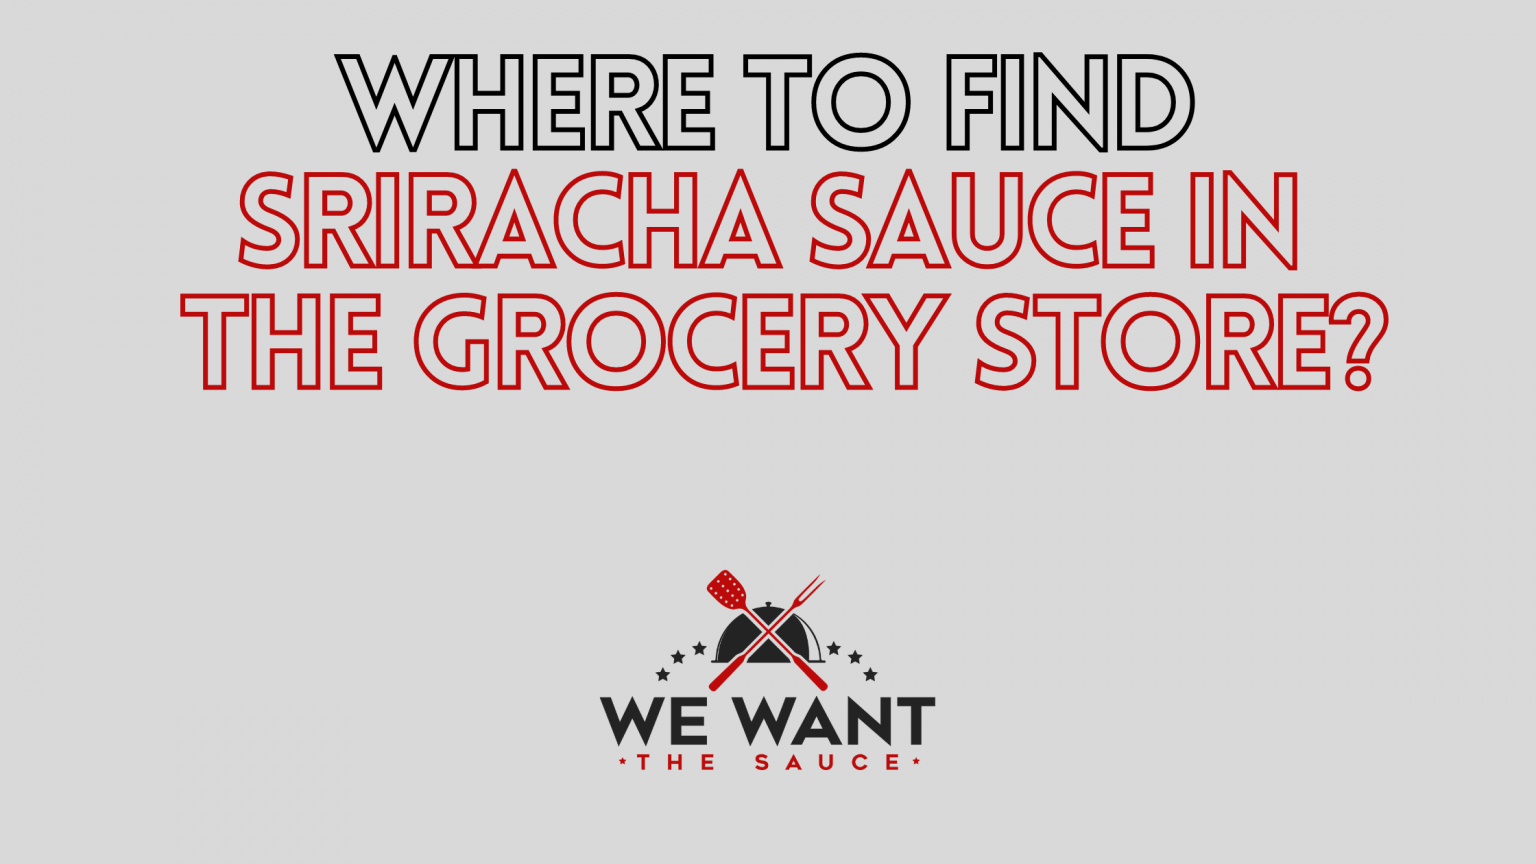 Where Is Sriracha Sauce In The Grocery Store